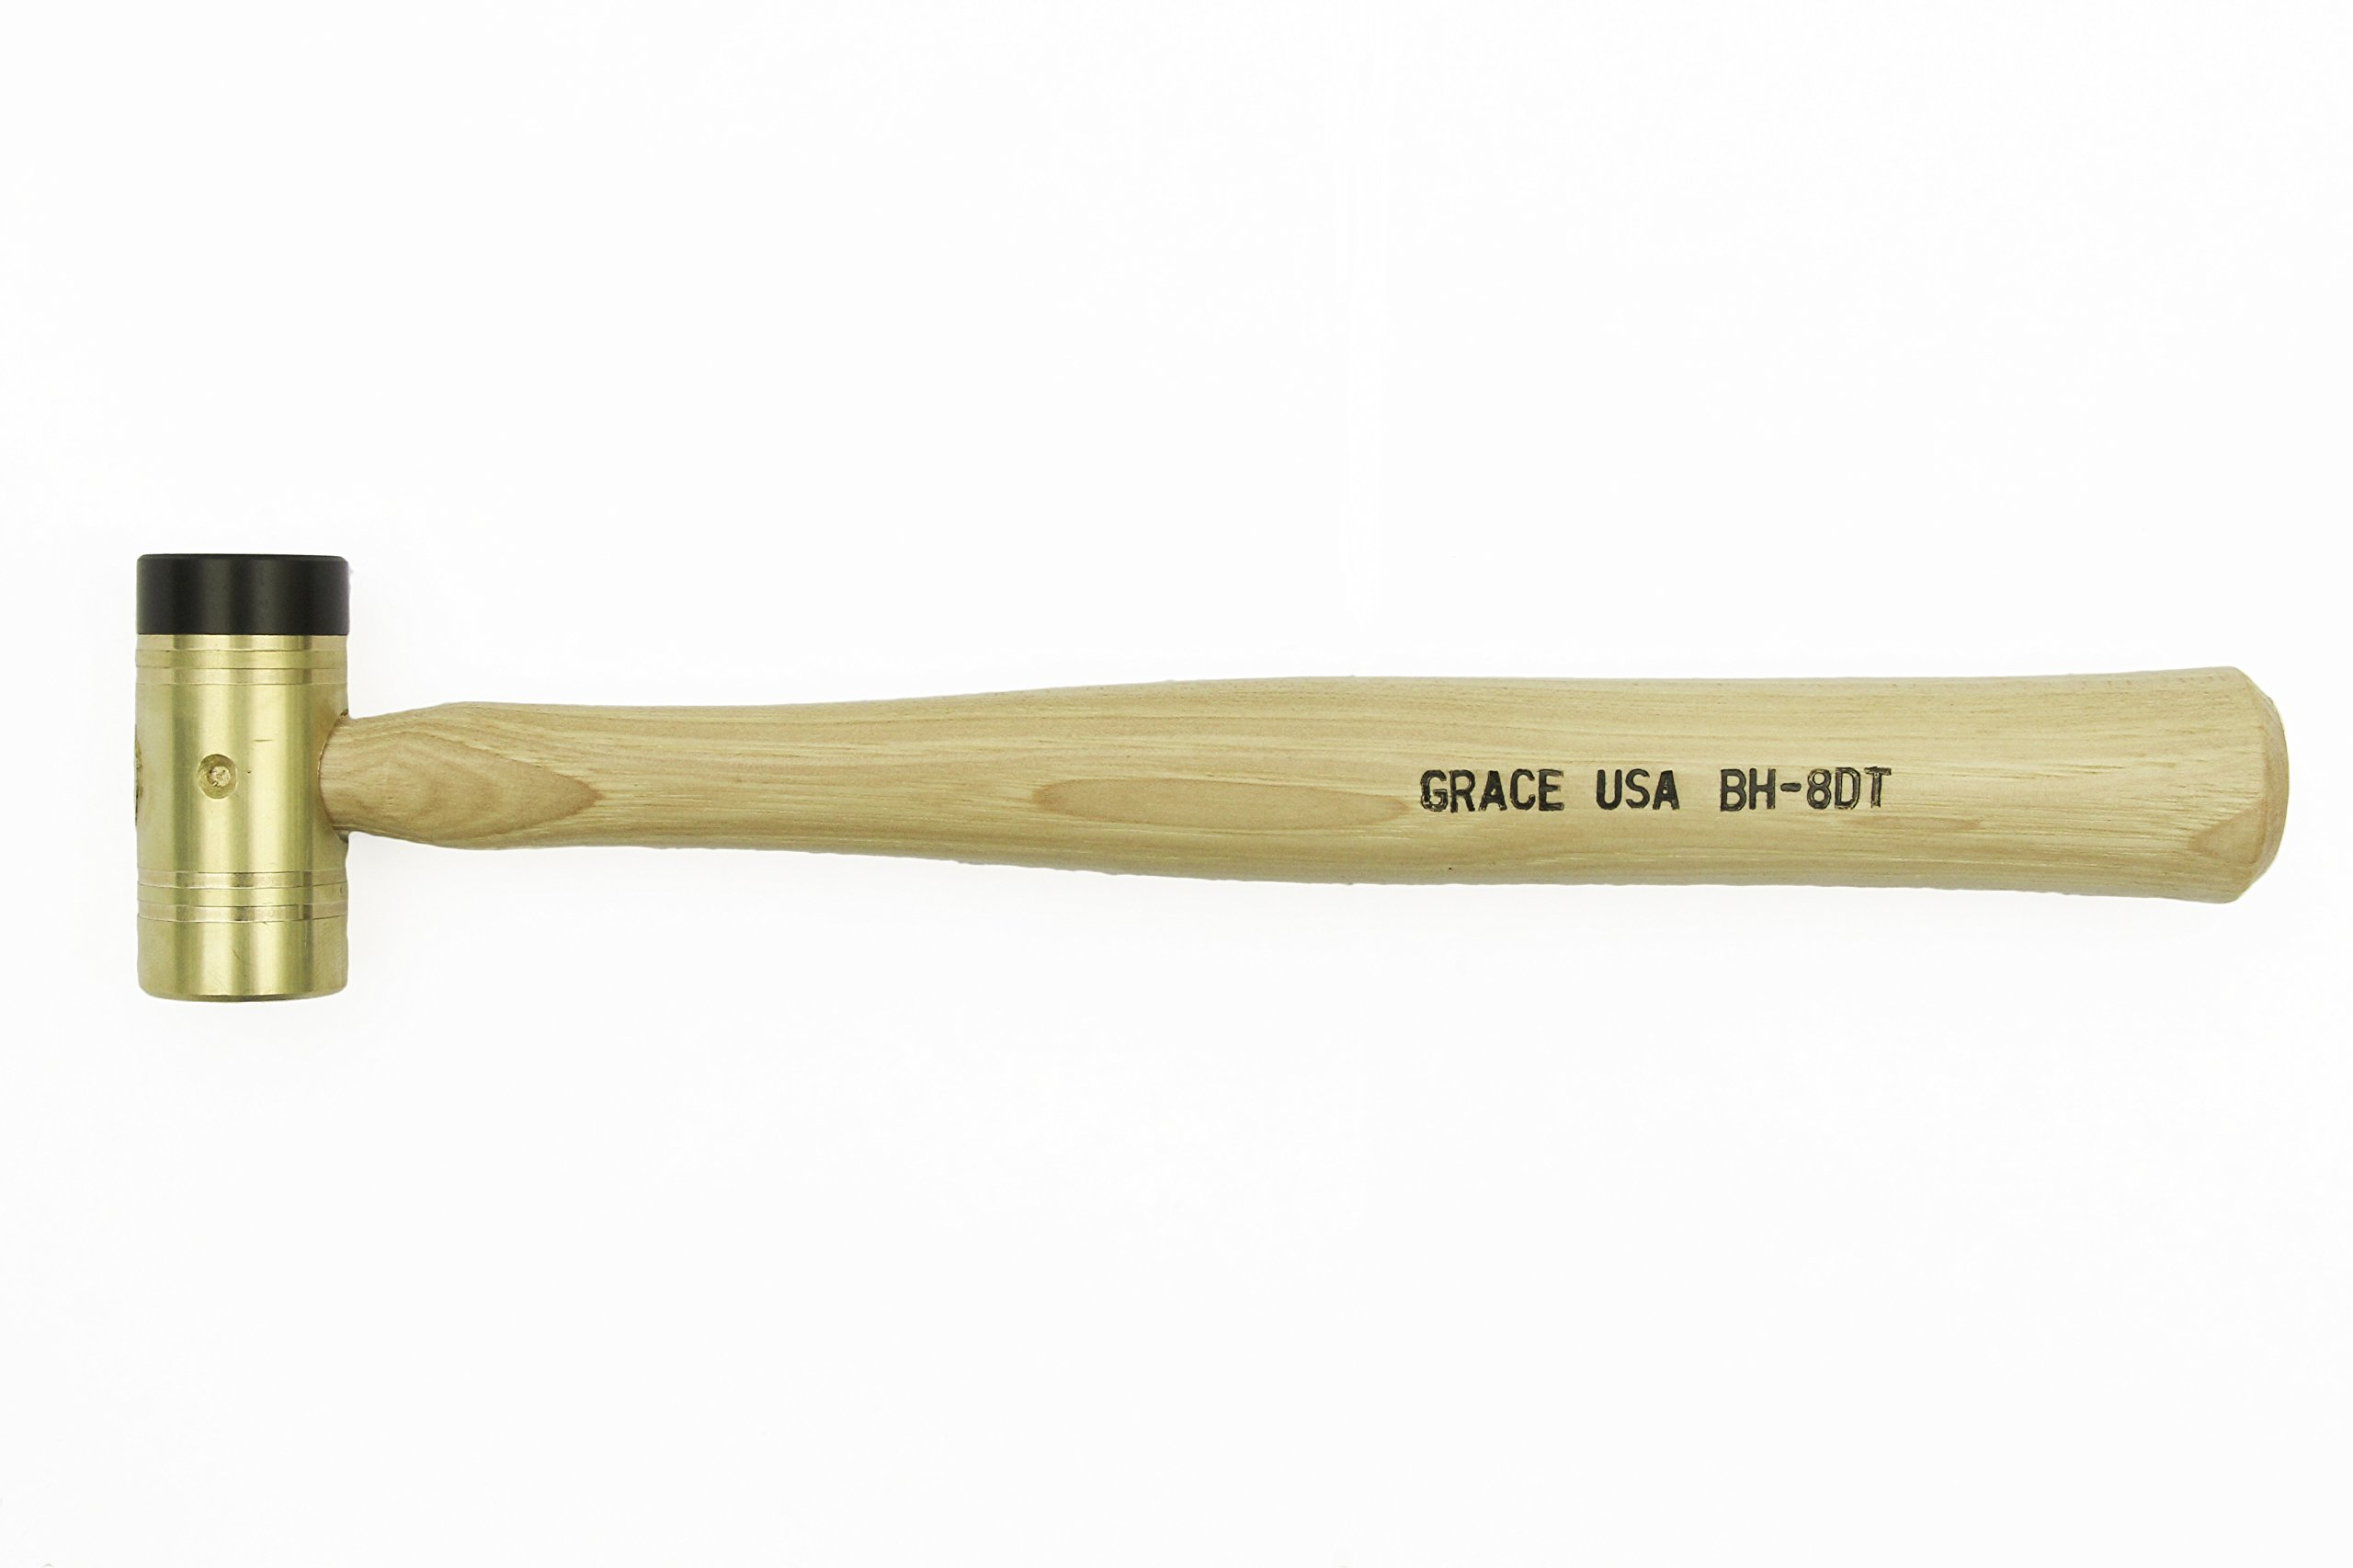 Grace USA - 8 Ounce Delrin Tipped Brass Hammer - 8DT -Gunsmithing - Hammers - 8 ounce - Gunsmith Tools & Accessories by Grace USA